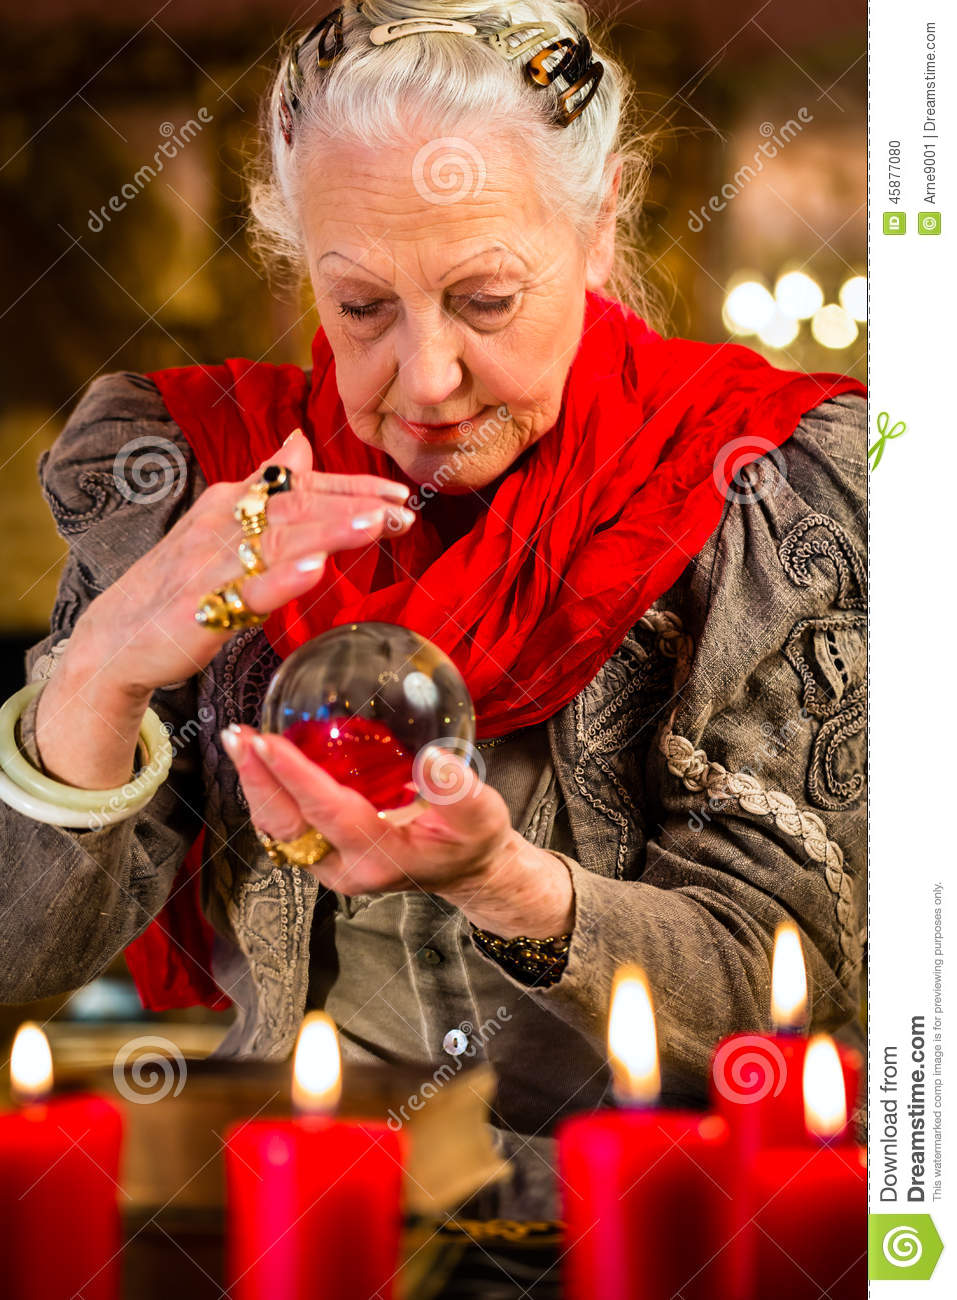 Soothsayer During Session With Crystal Ball Stock Photo - Image of